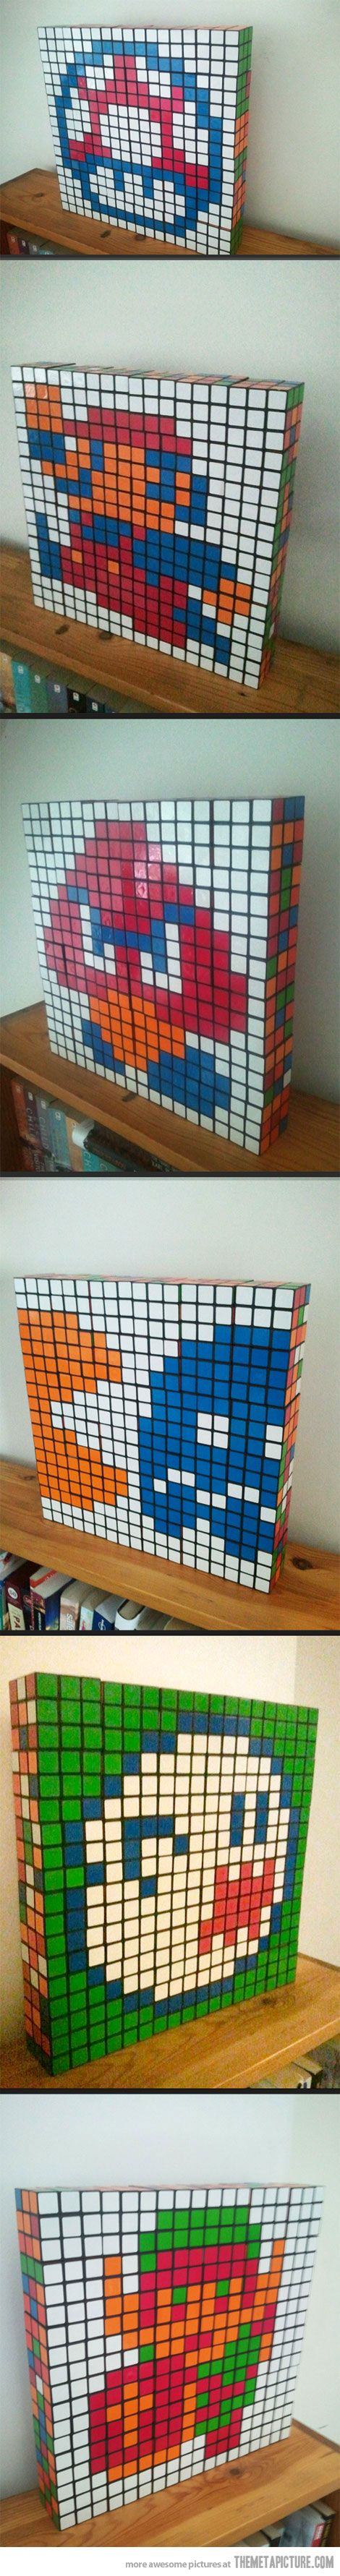 Rubik's Cubism. If I could manage to find a bunch of cubes for relatively cheap, I would totally do this!